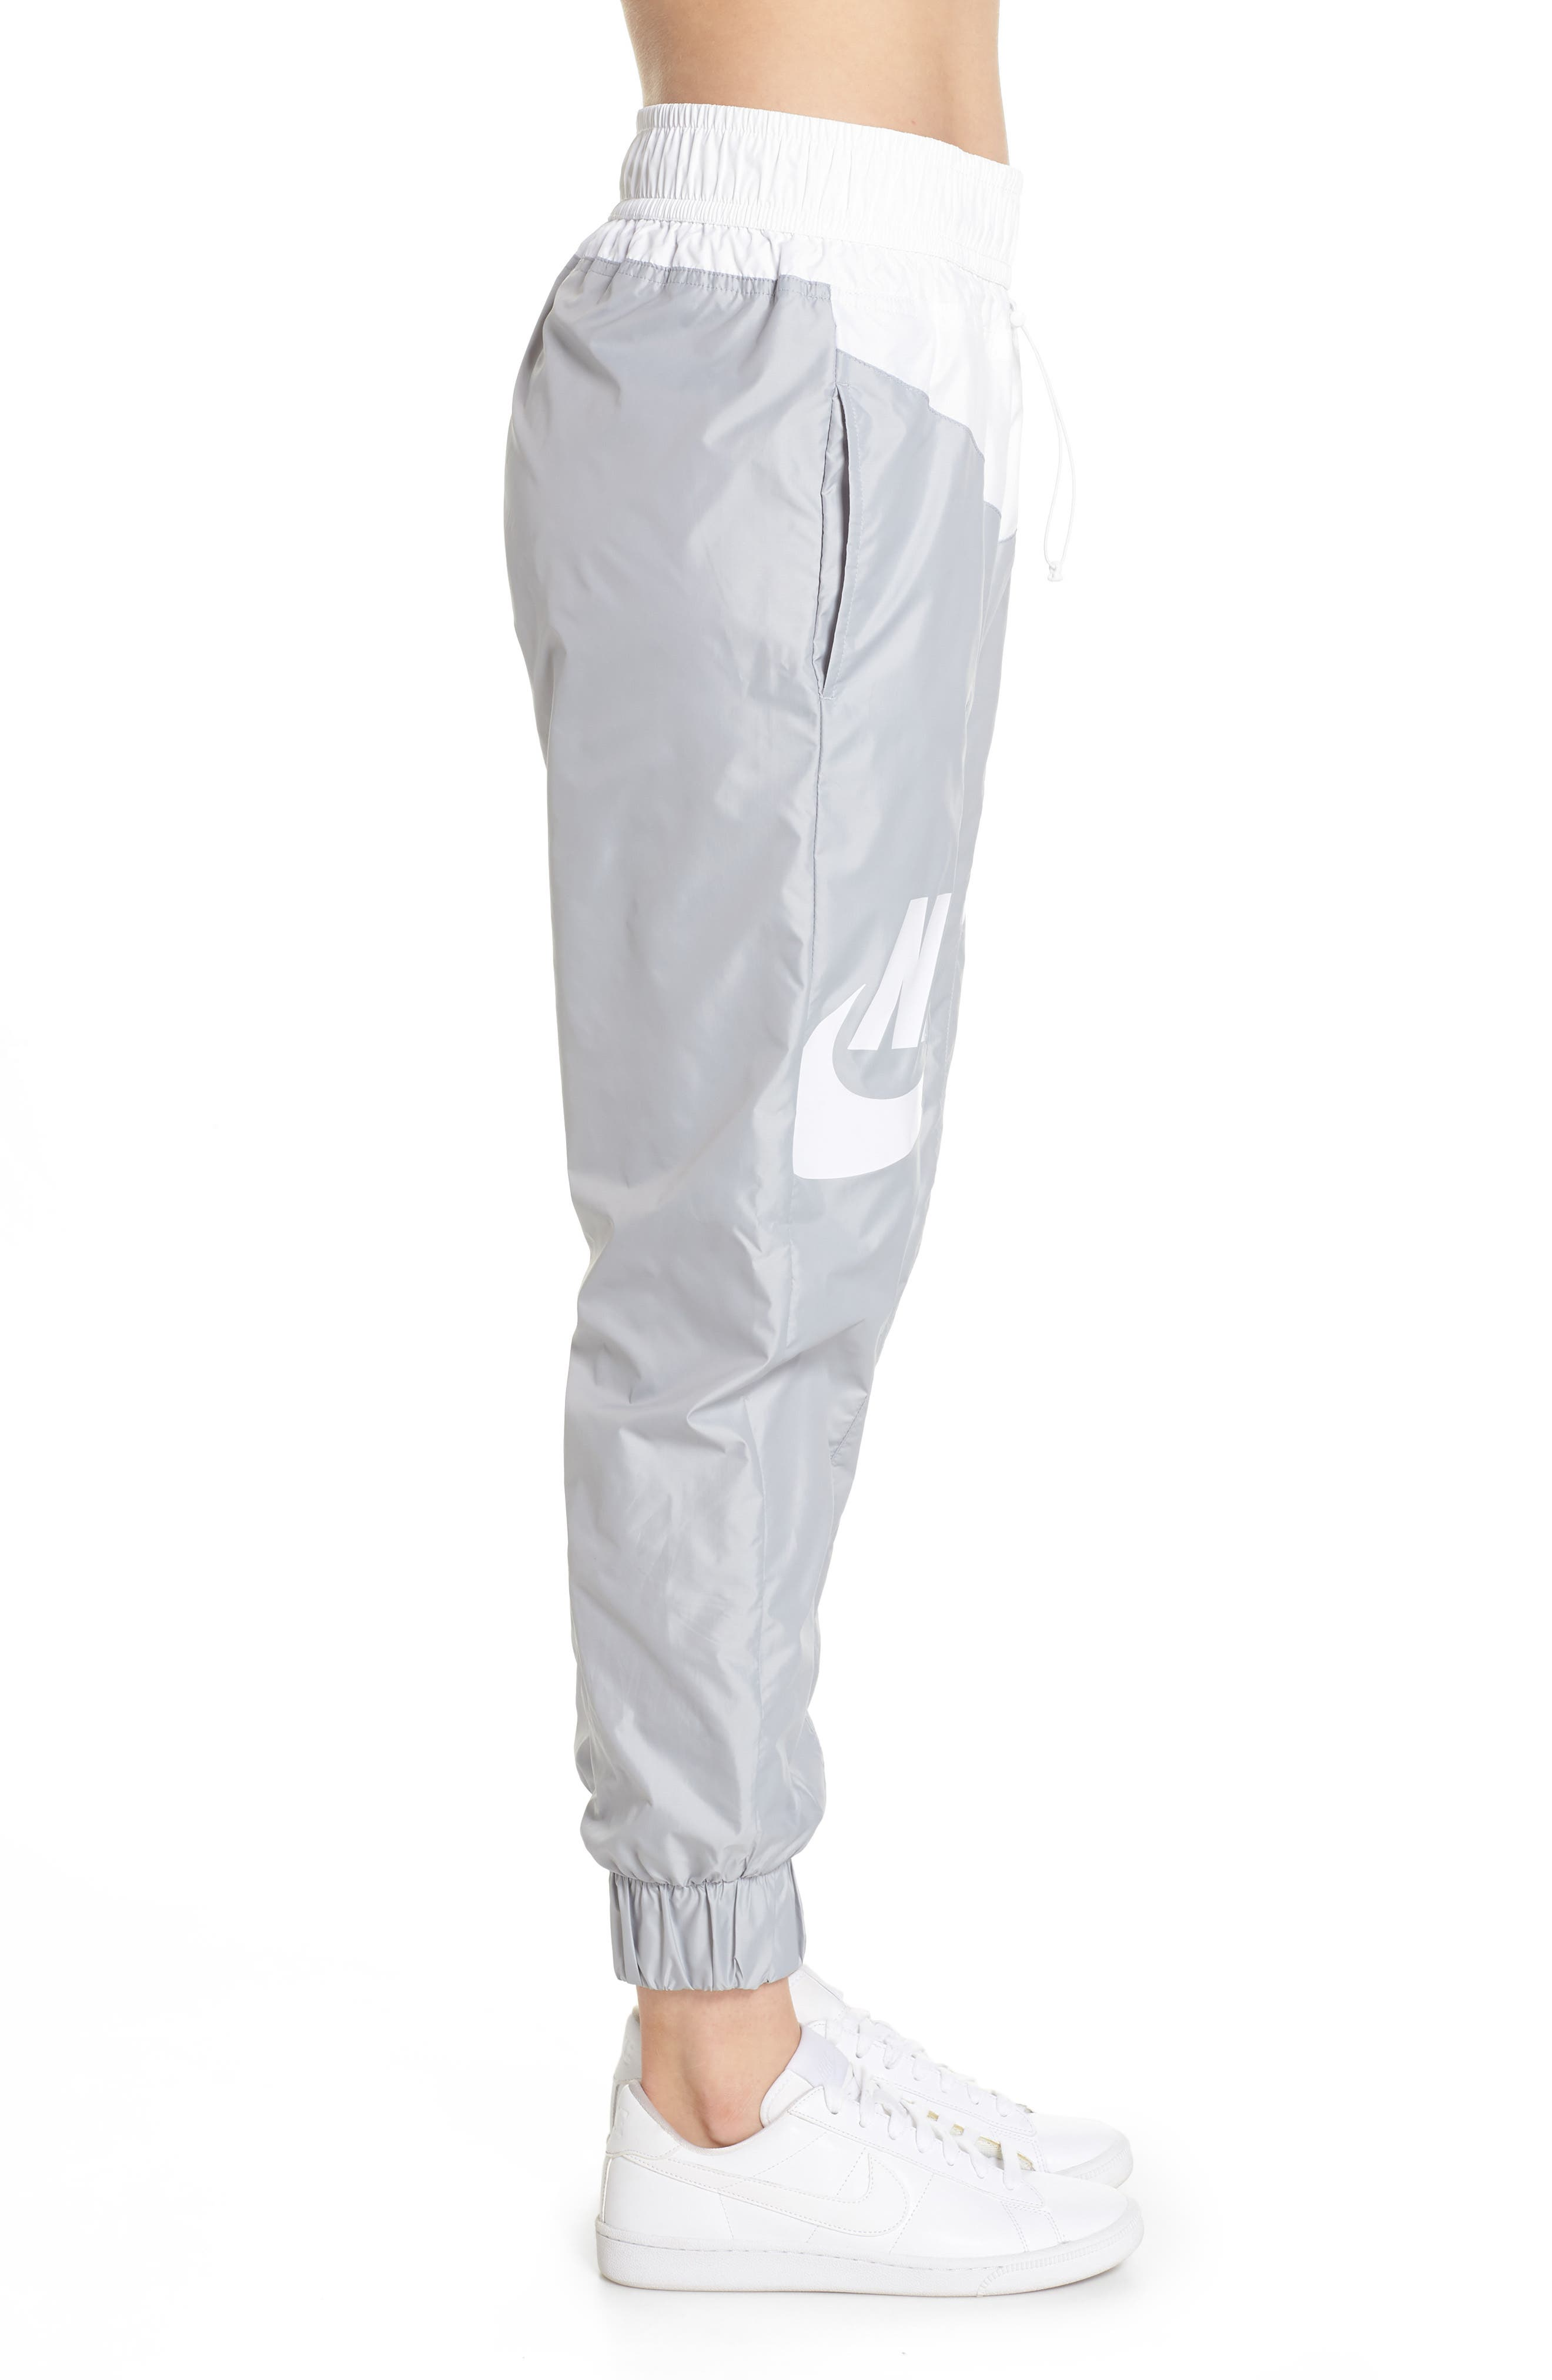 Sportswear Windrunner pants,                             Alternate thumbnail 3, color,                             Wolf Grey/ Summit White